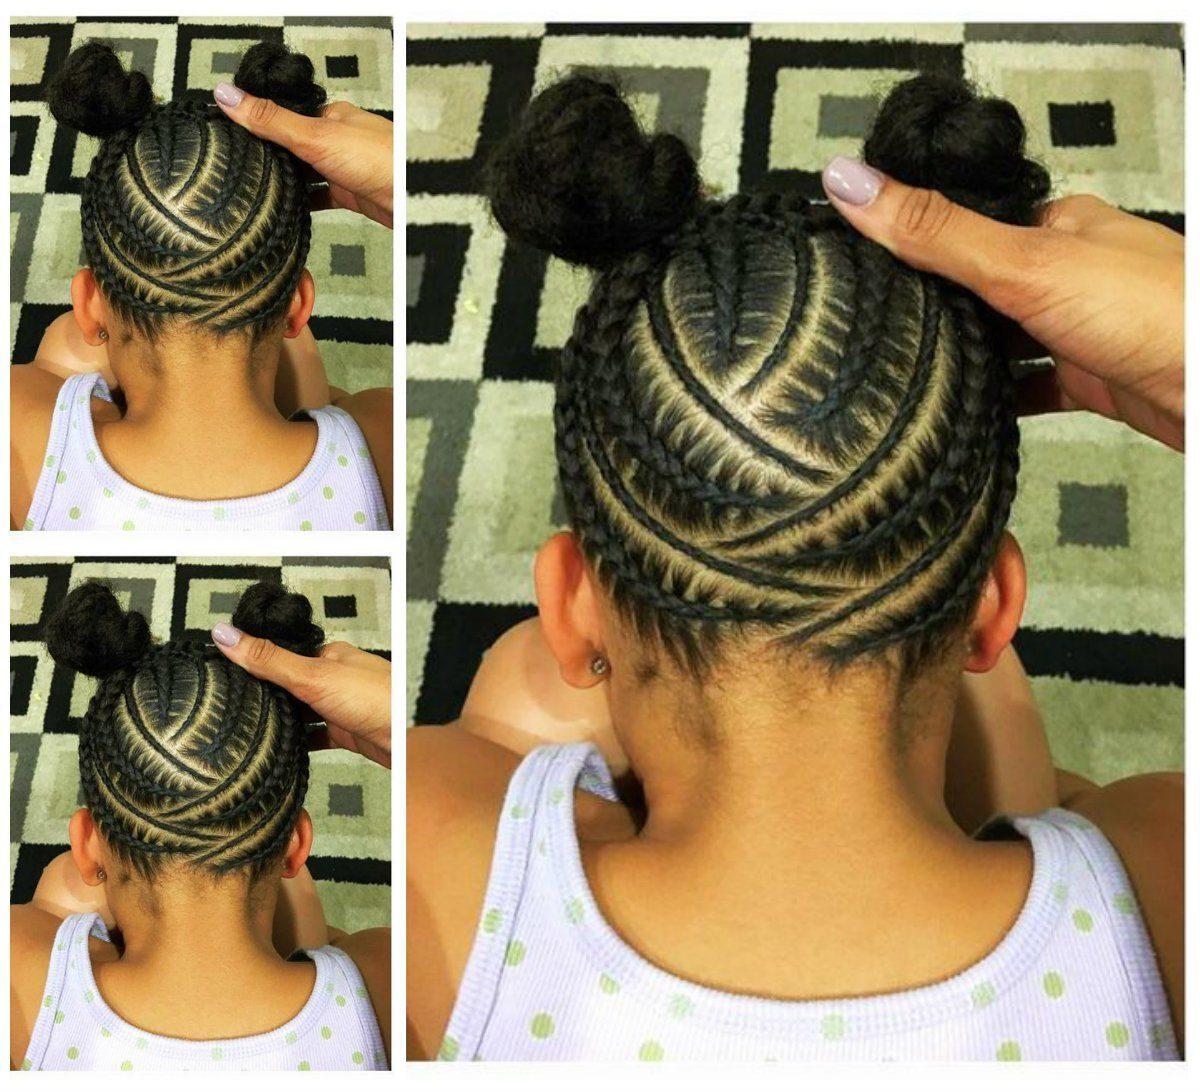 29 Braided Cornrows With Buns For Little Black Girls Afrocosmopolitan Hair Styles Little Girls Ponytail Hairstyles Kids Braided Hairstyles